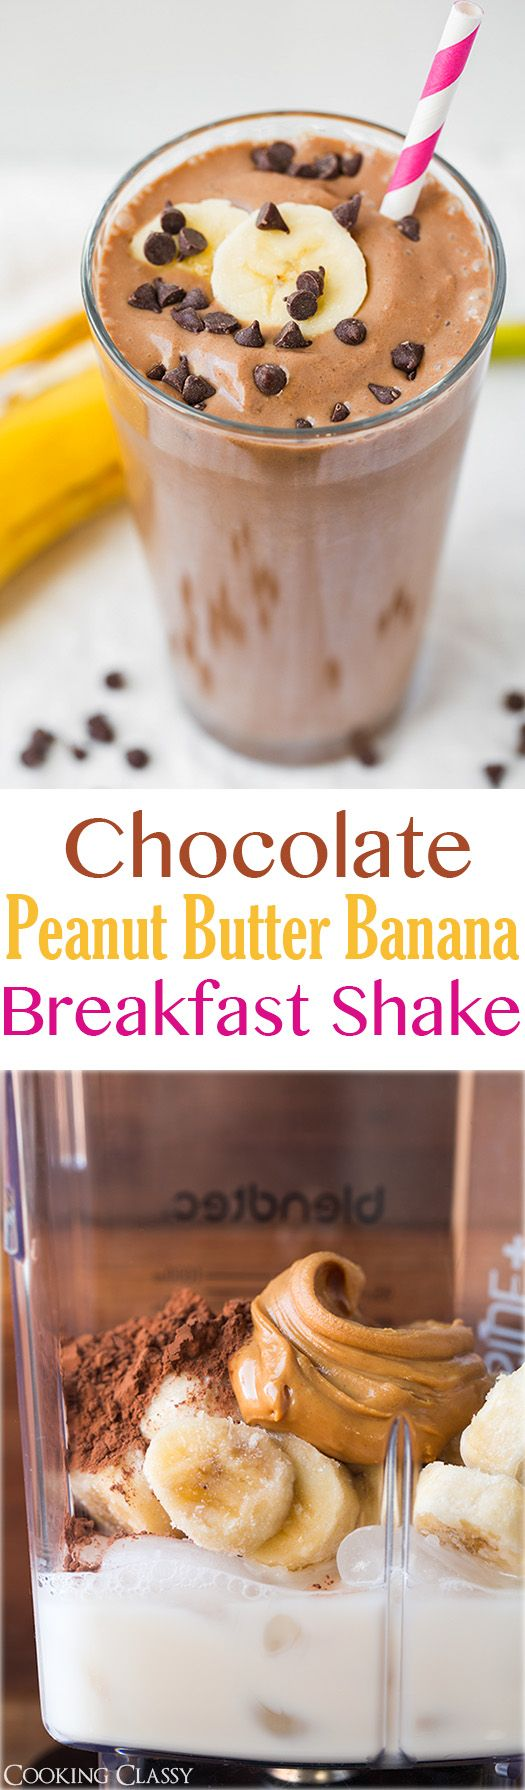 Chocolate Peanut Butter Banana Breakfast Shake - healthy, easy to make and tastes like a shake!